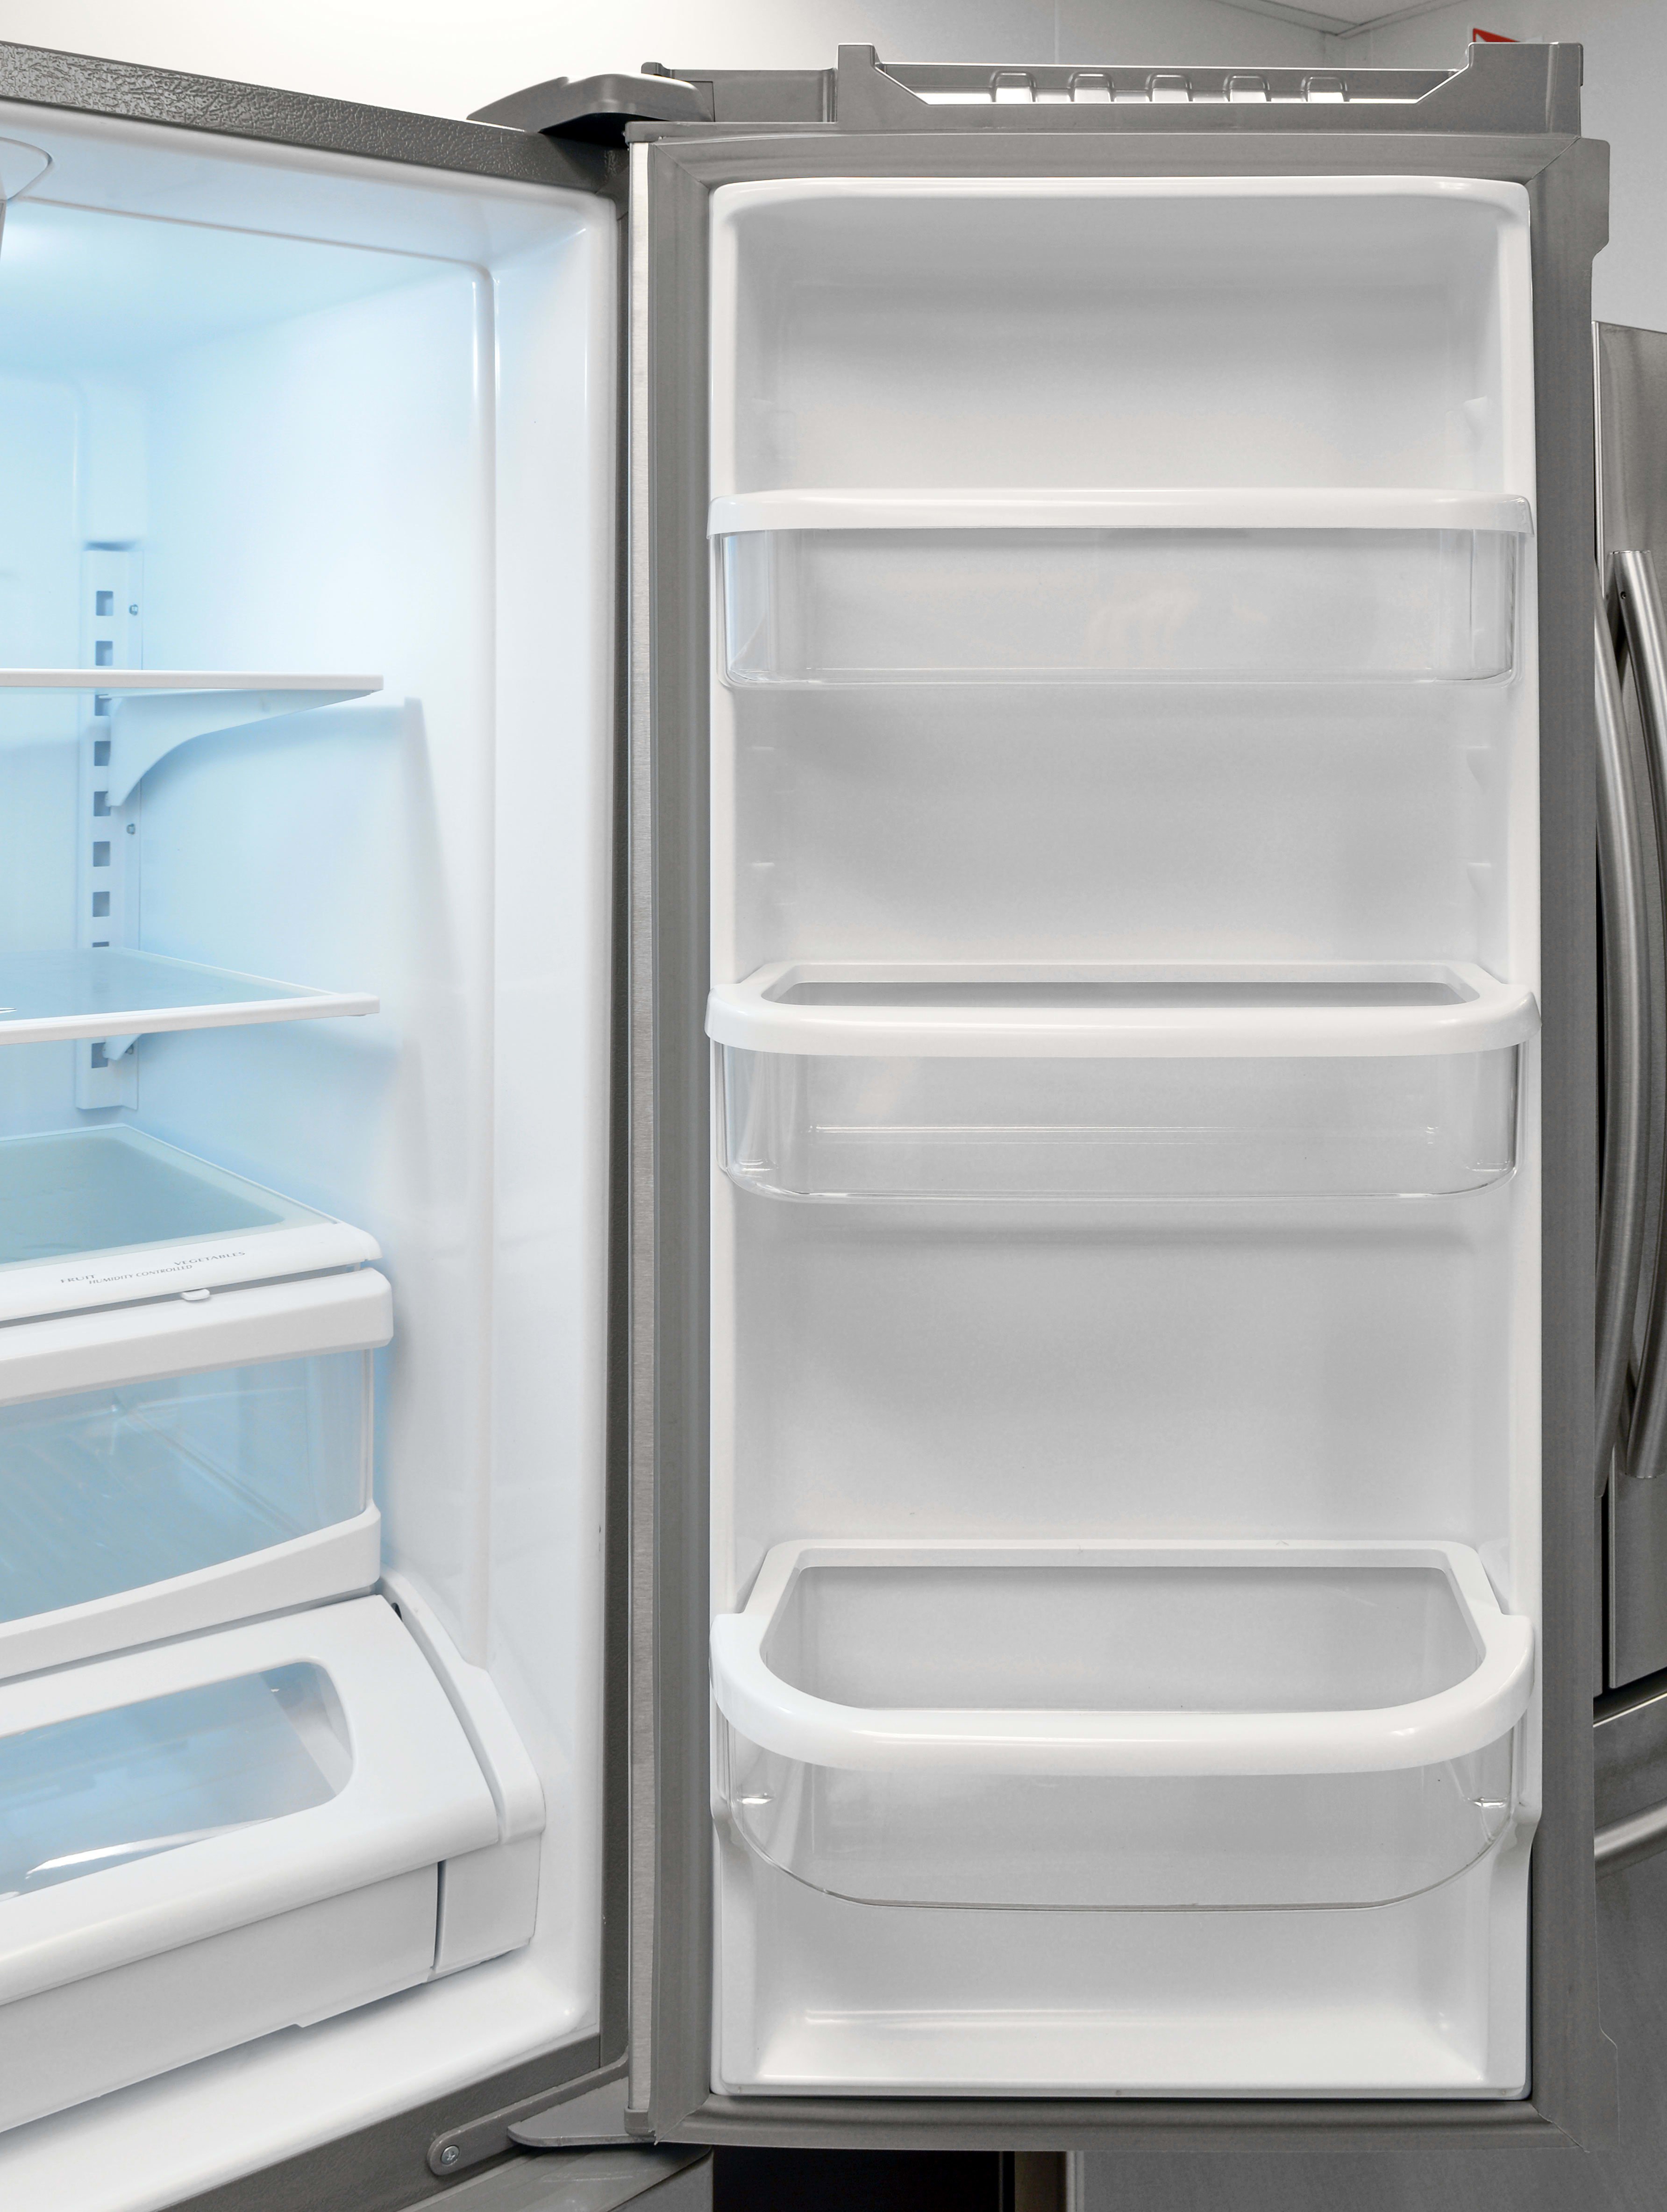 The Whirlpool WRF535SMBM's right fridge door mirrors the left, offering up even more gallon-sized storage.